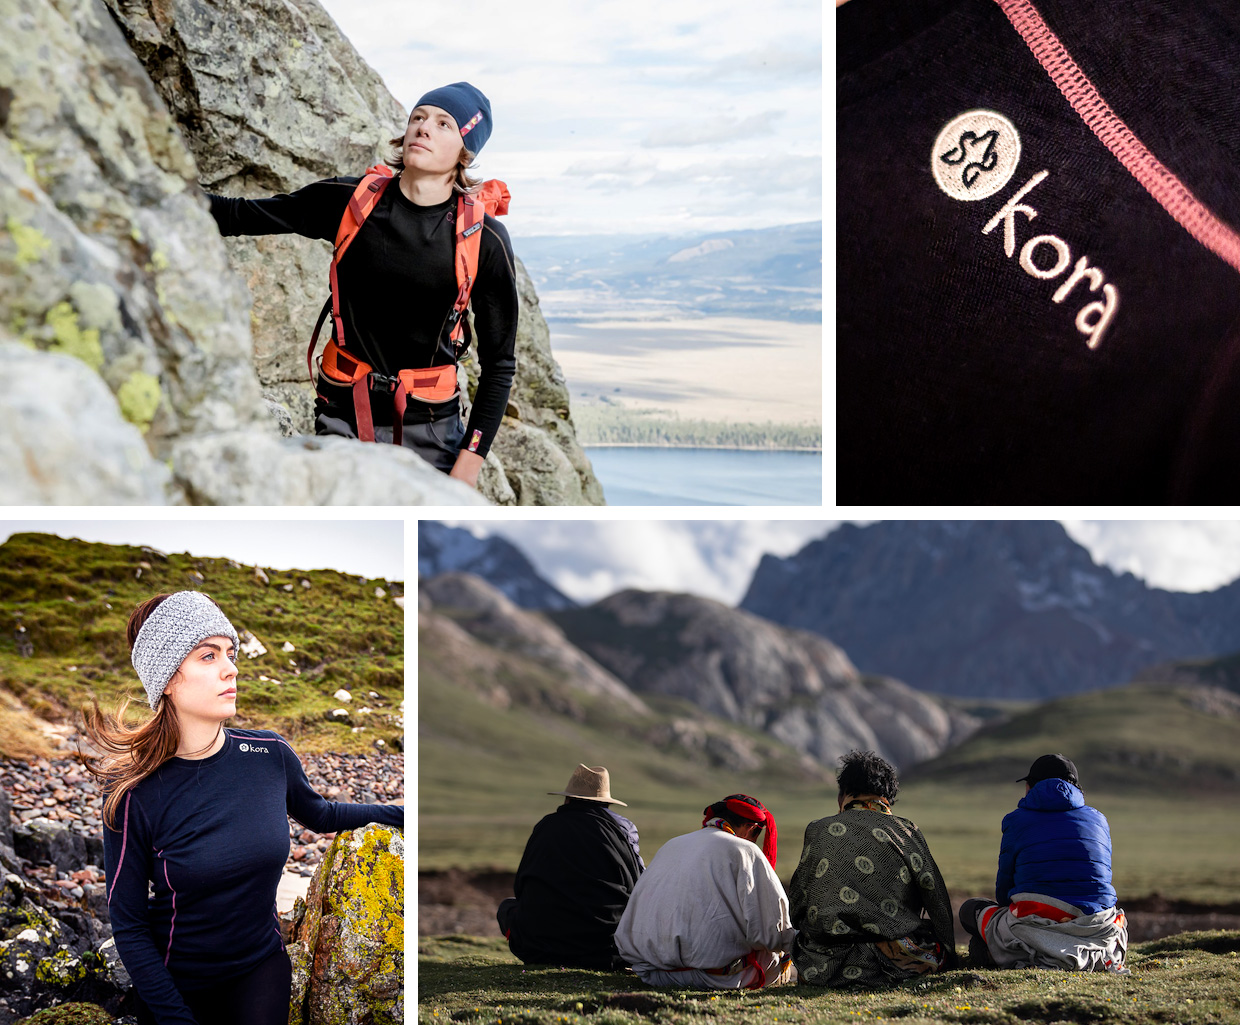 Kora: The Spirit of Adventure